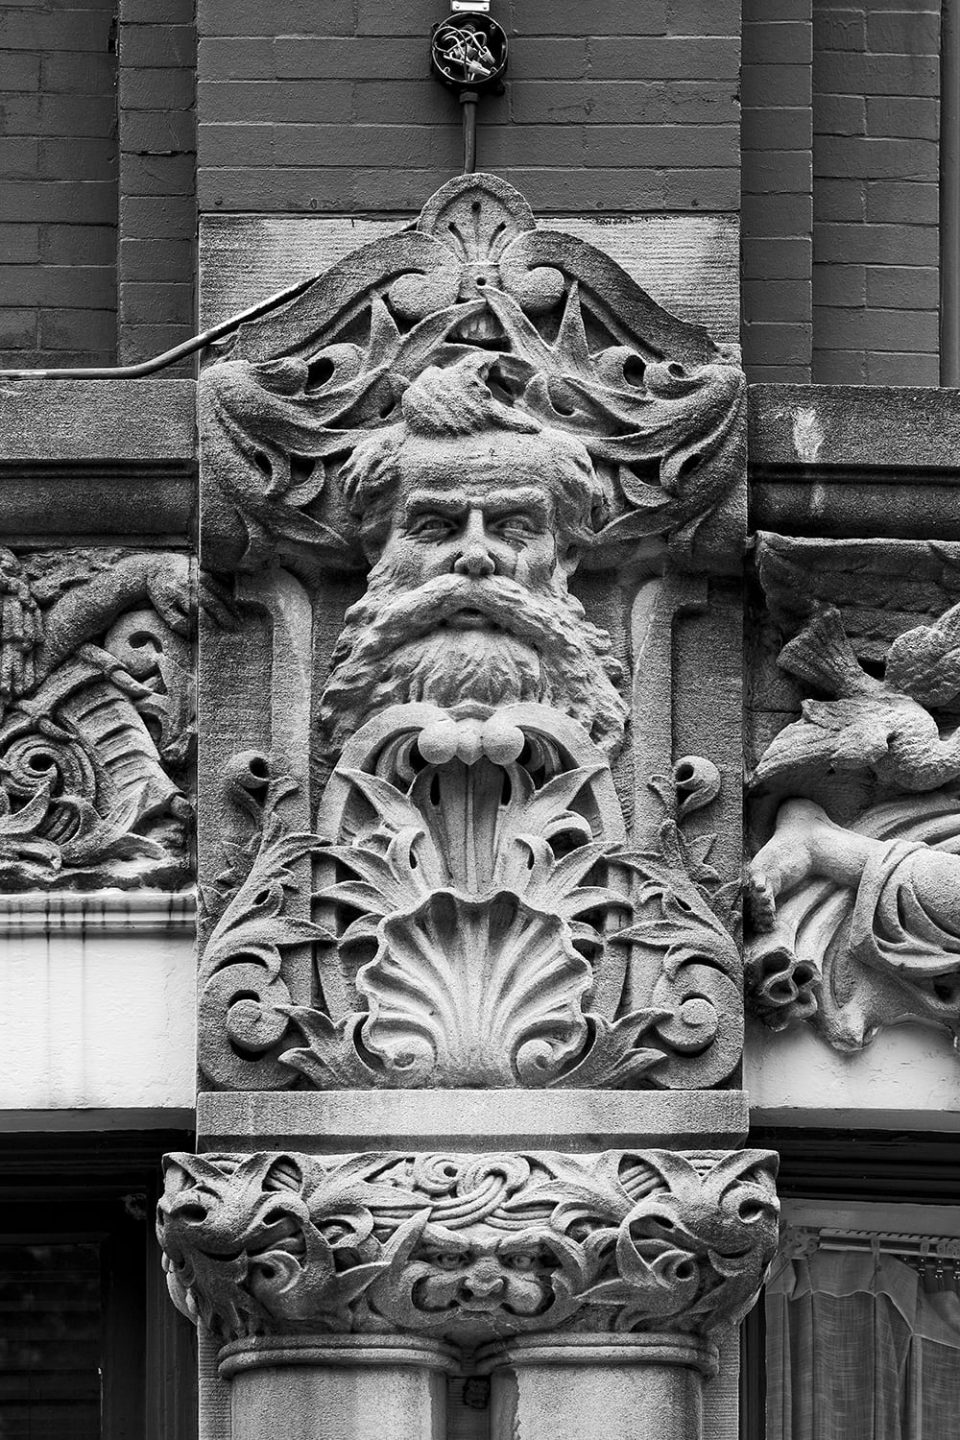 Black and white photograph by Keith Dotson of Cyrus T.C. Deake seen as a stone carving on the exterior of the Drhumore Building in Asheville, North Carolina.